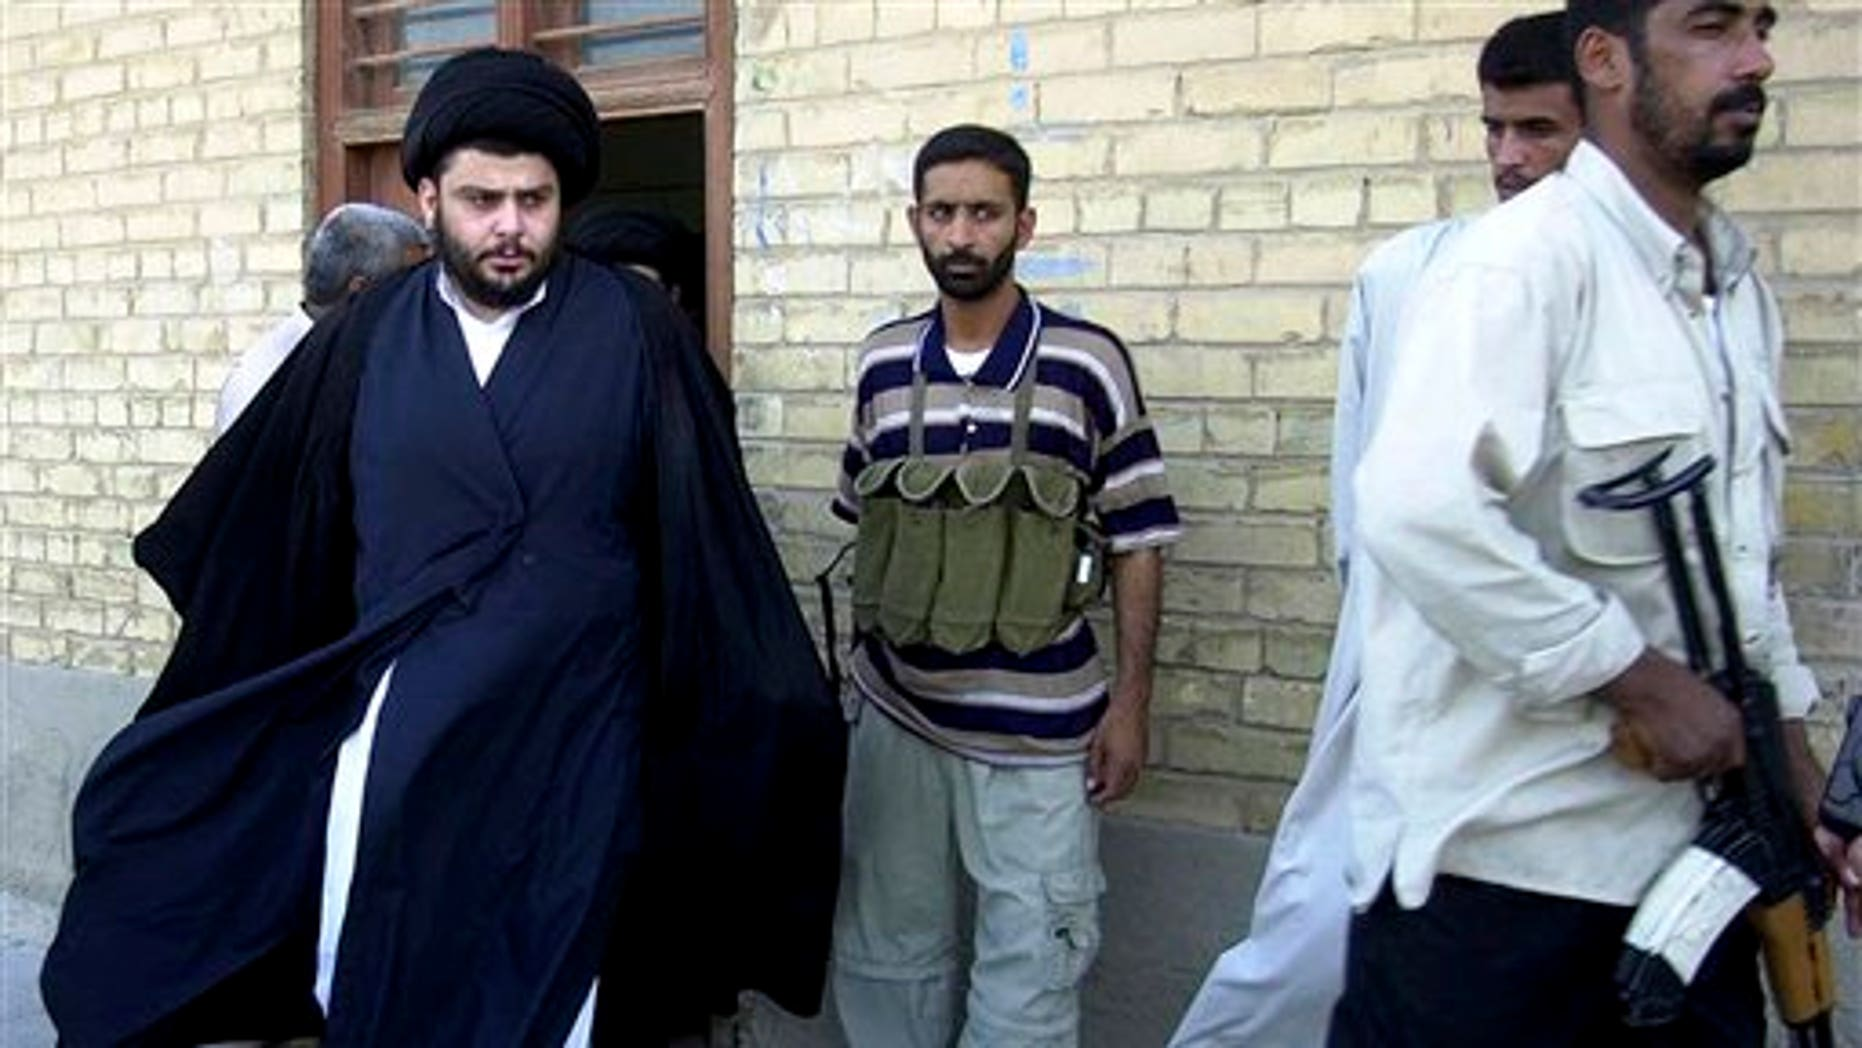 June 5, 2004: Shiite cleric Muqtada al-Sadr, left, steps from an office building in Najaf, Iraq.